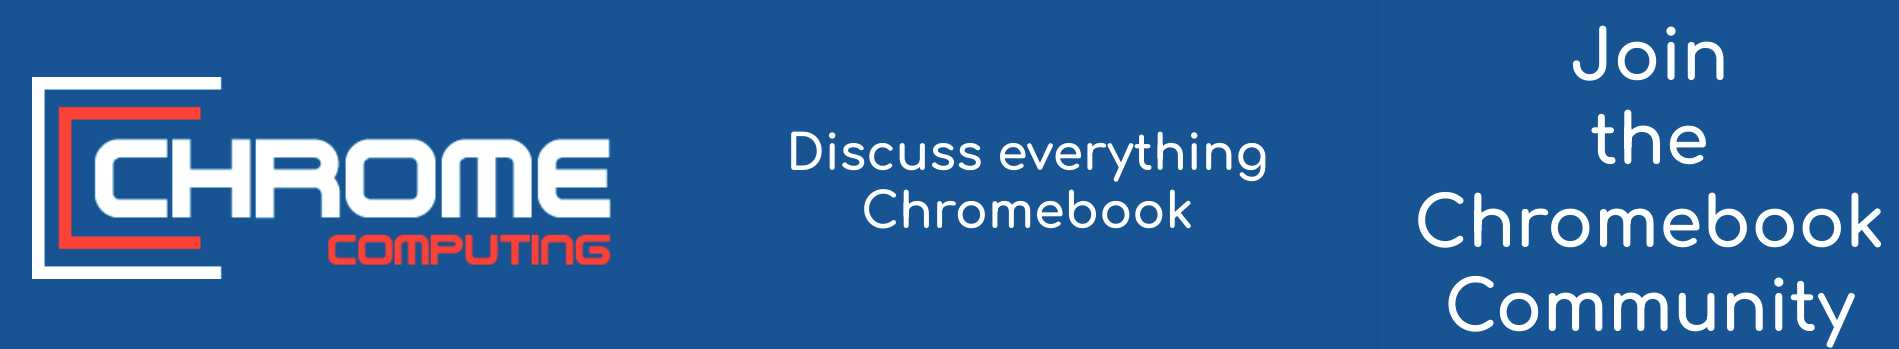 Join the Chromebook Community